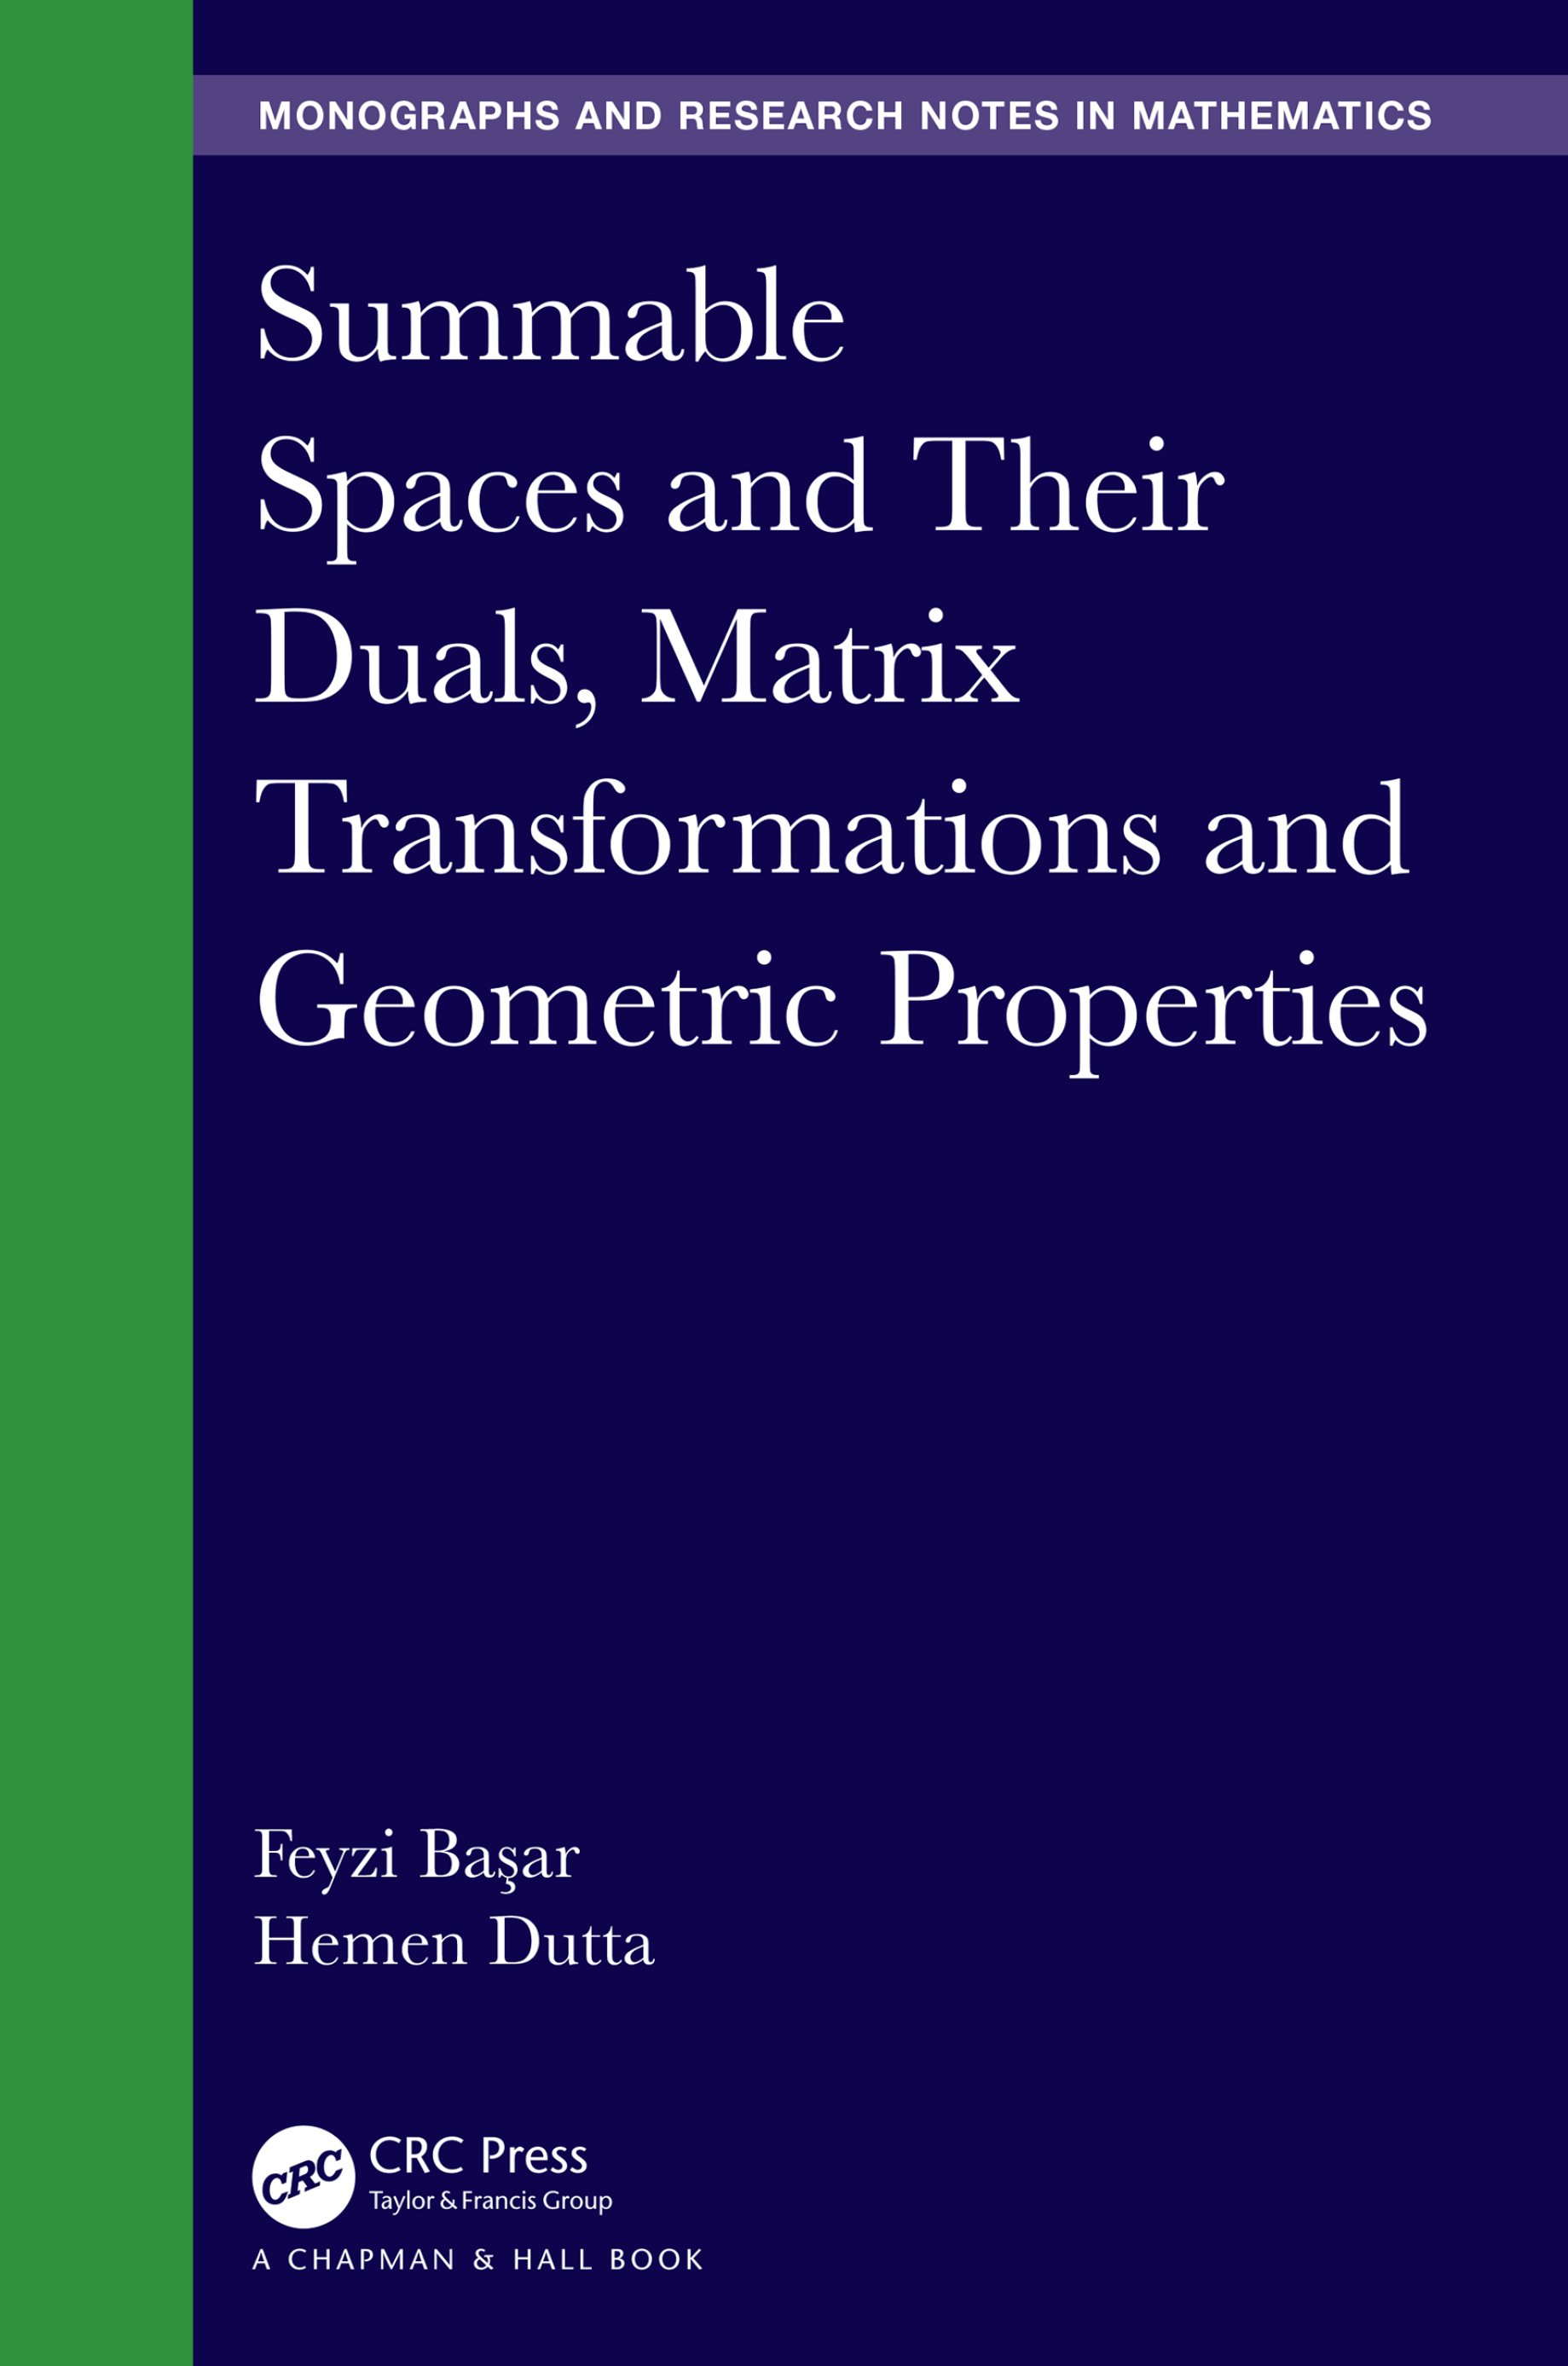 Summable Spaces and Their Duals, Matrix Transformations and Geometric Properties book cover